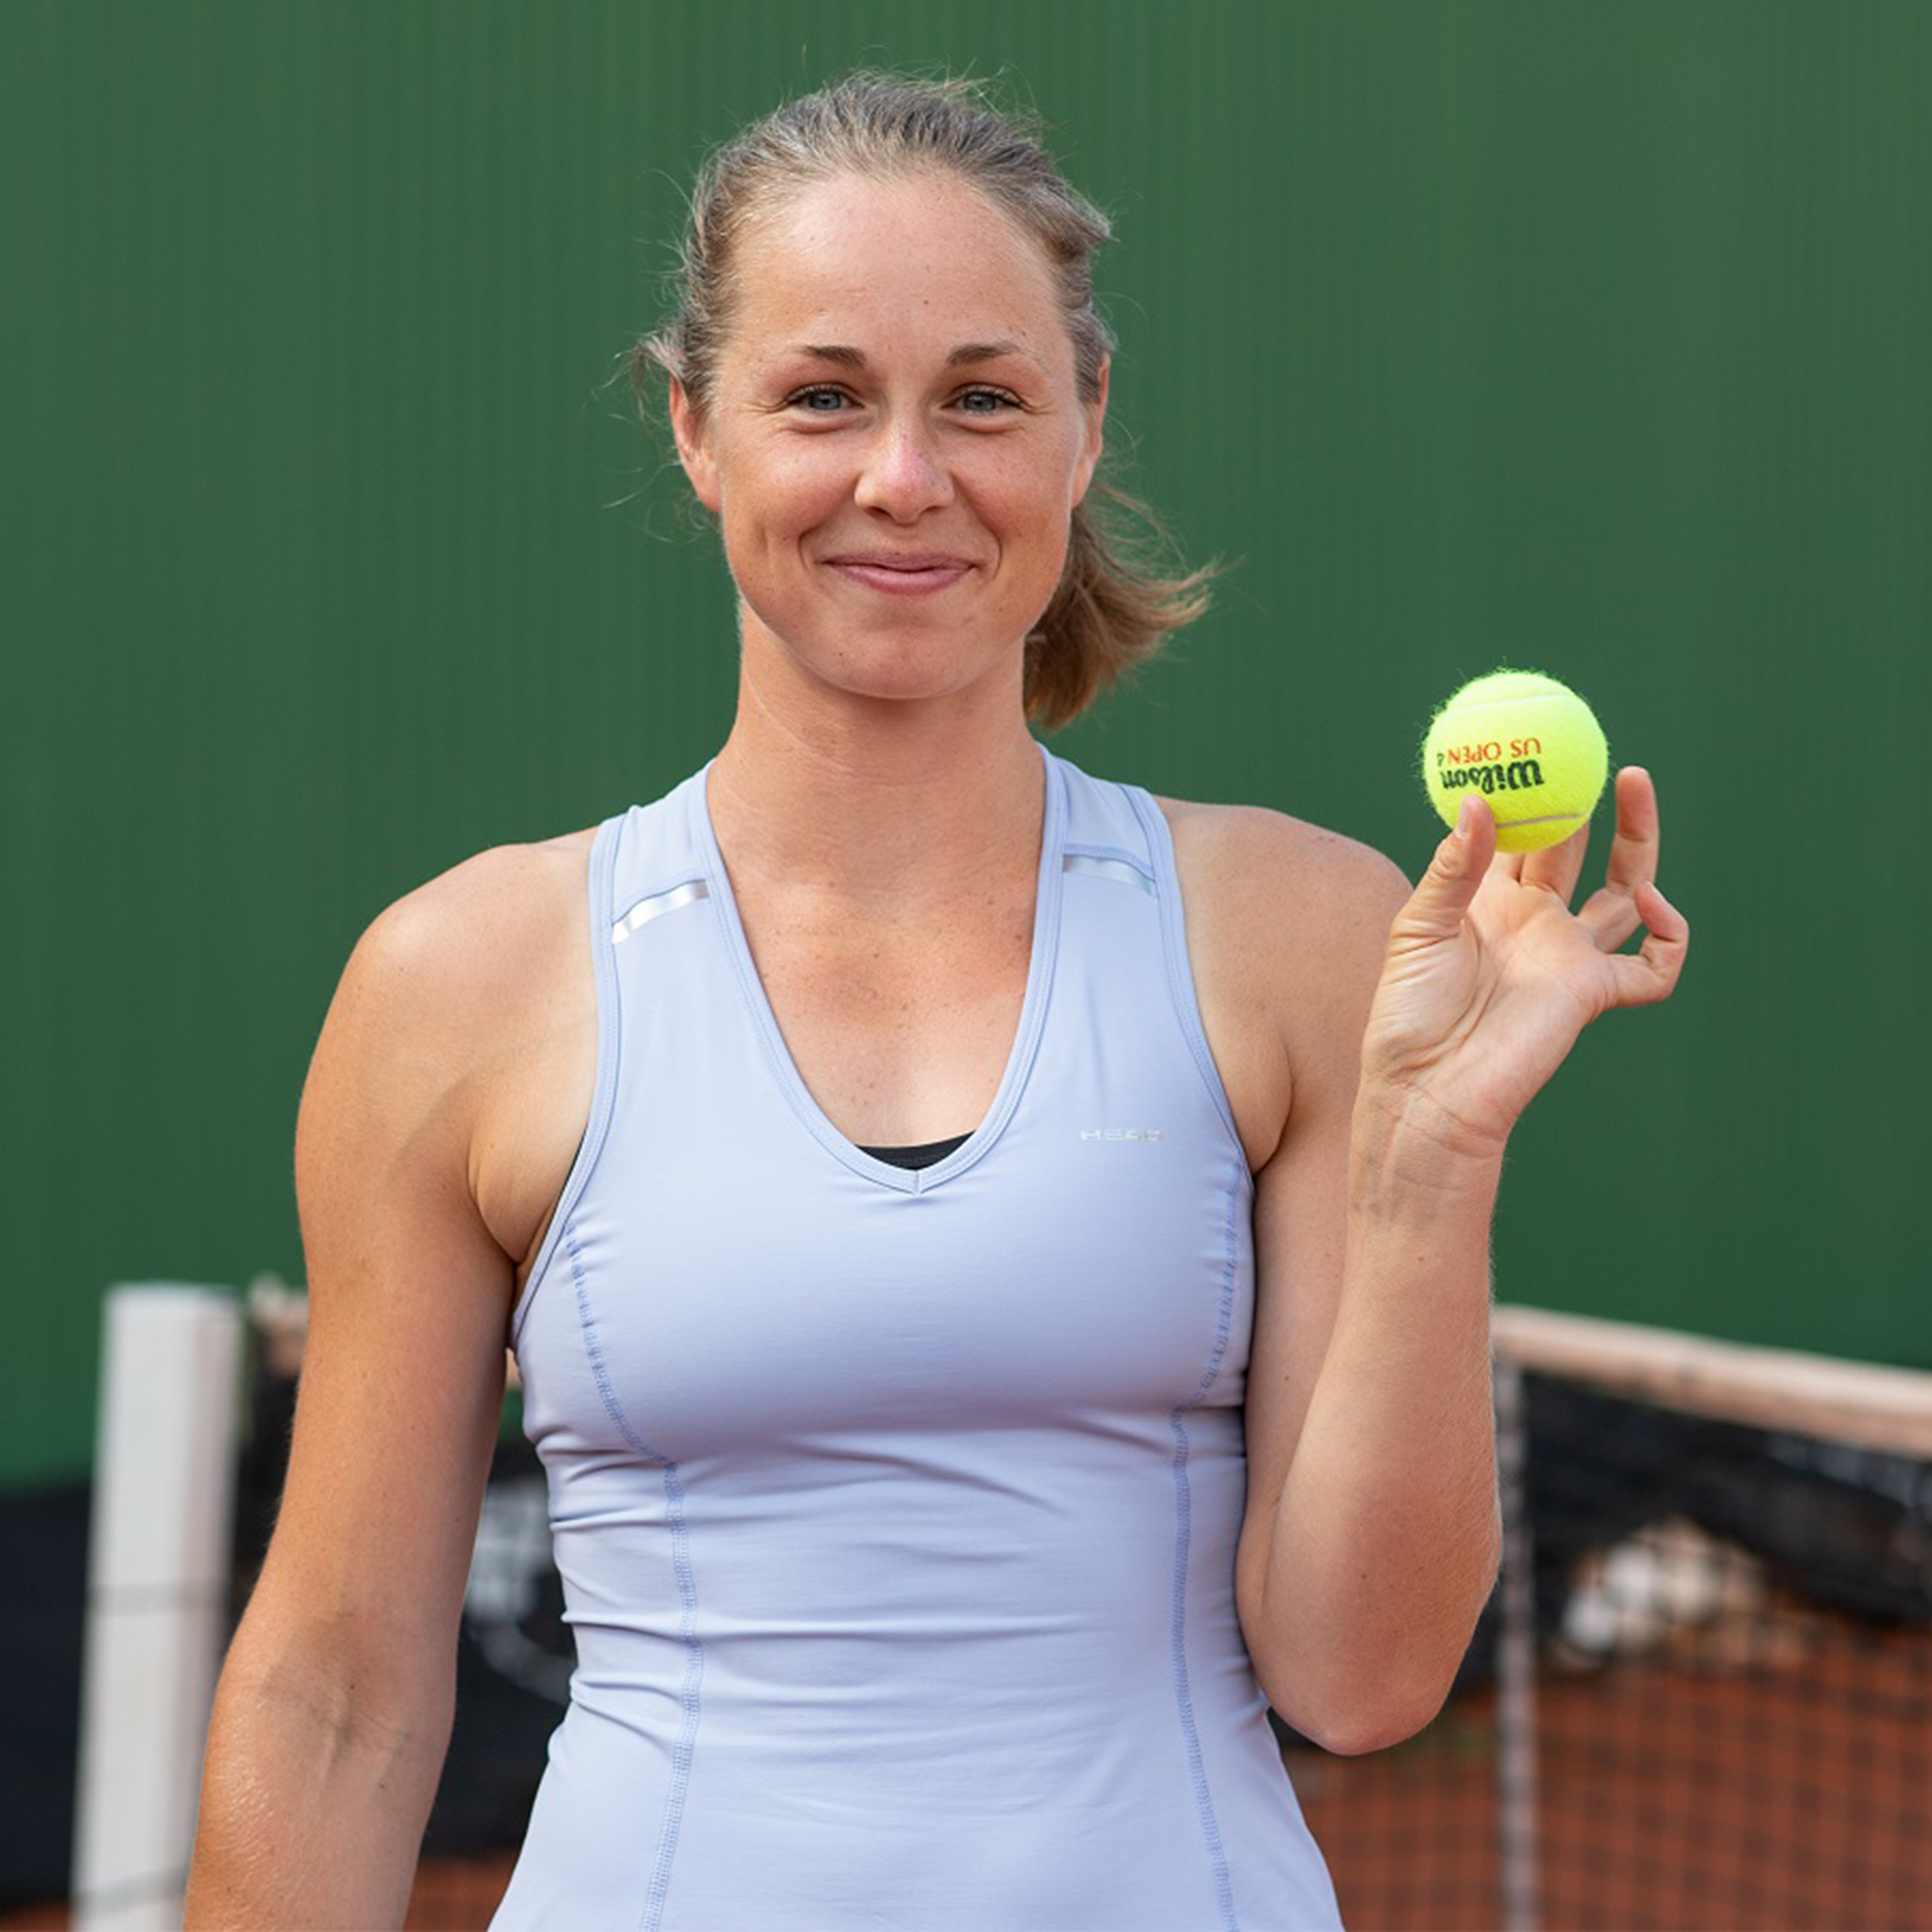 Woman standing on tennis court with tennisball in hand